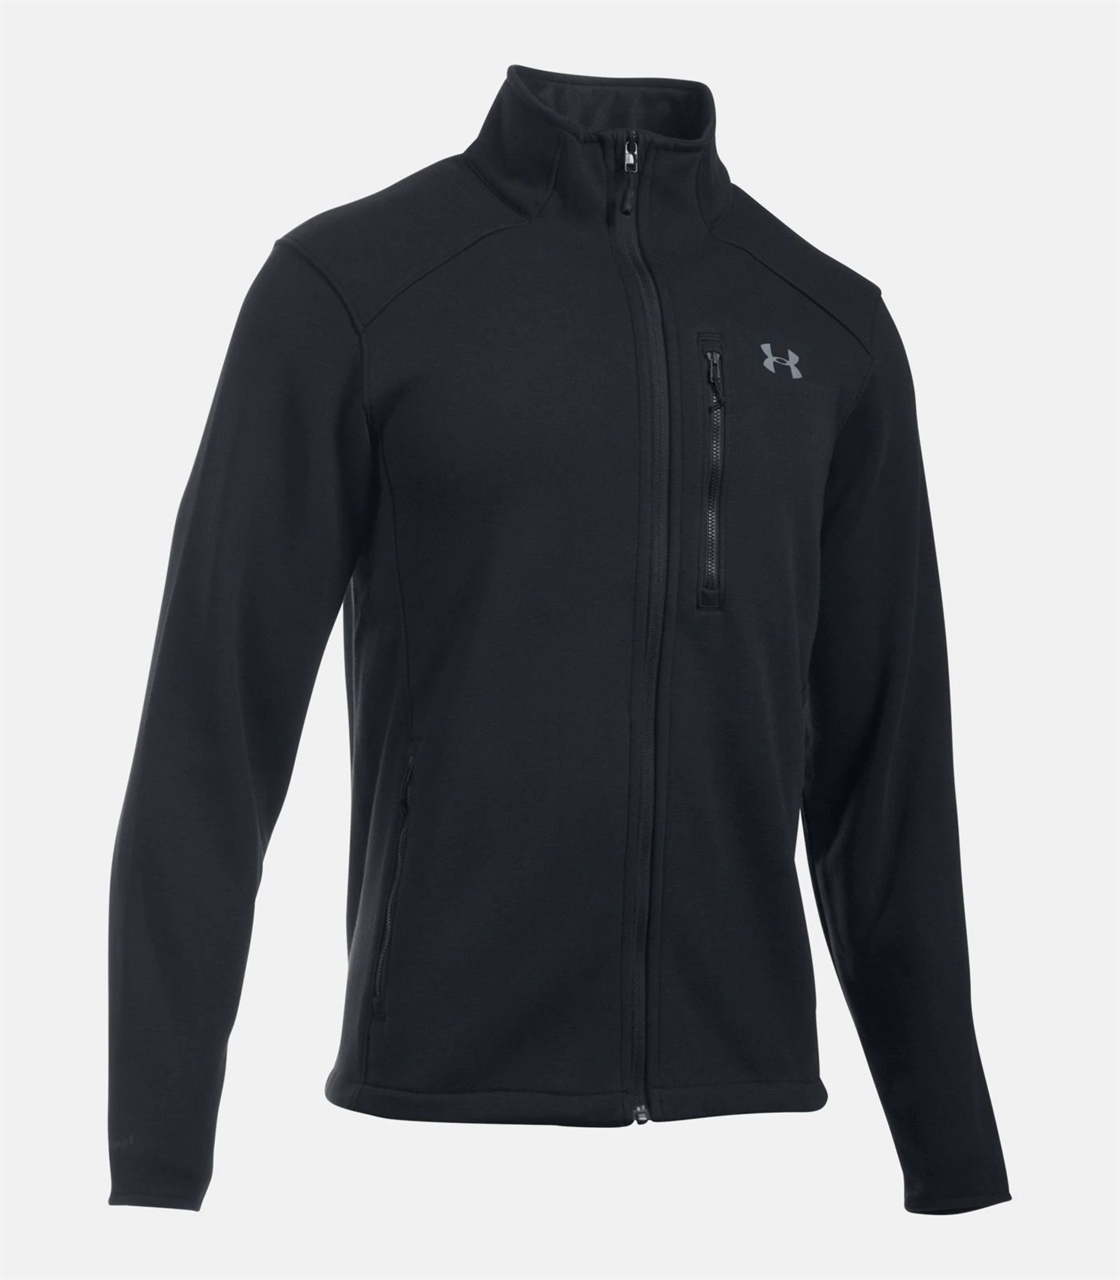 Picture of Under Armour Men's Granite Jacket